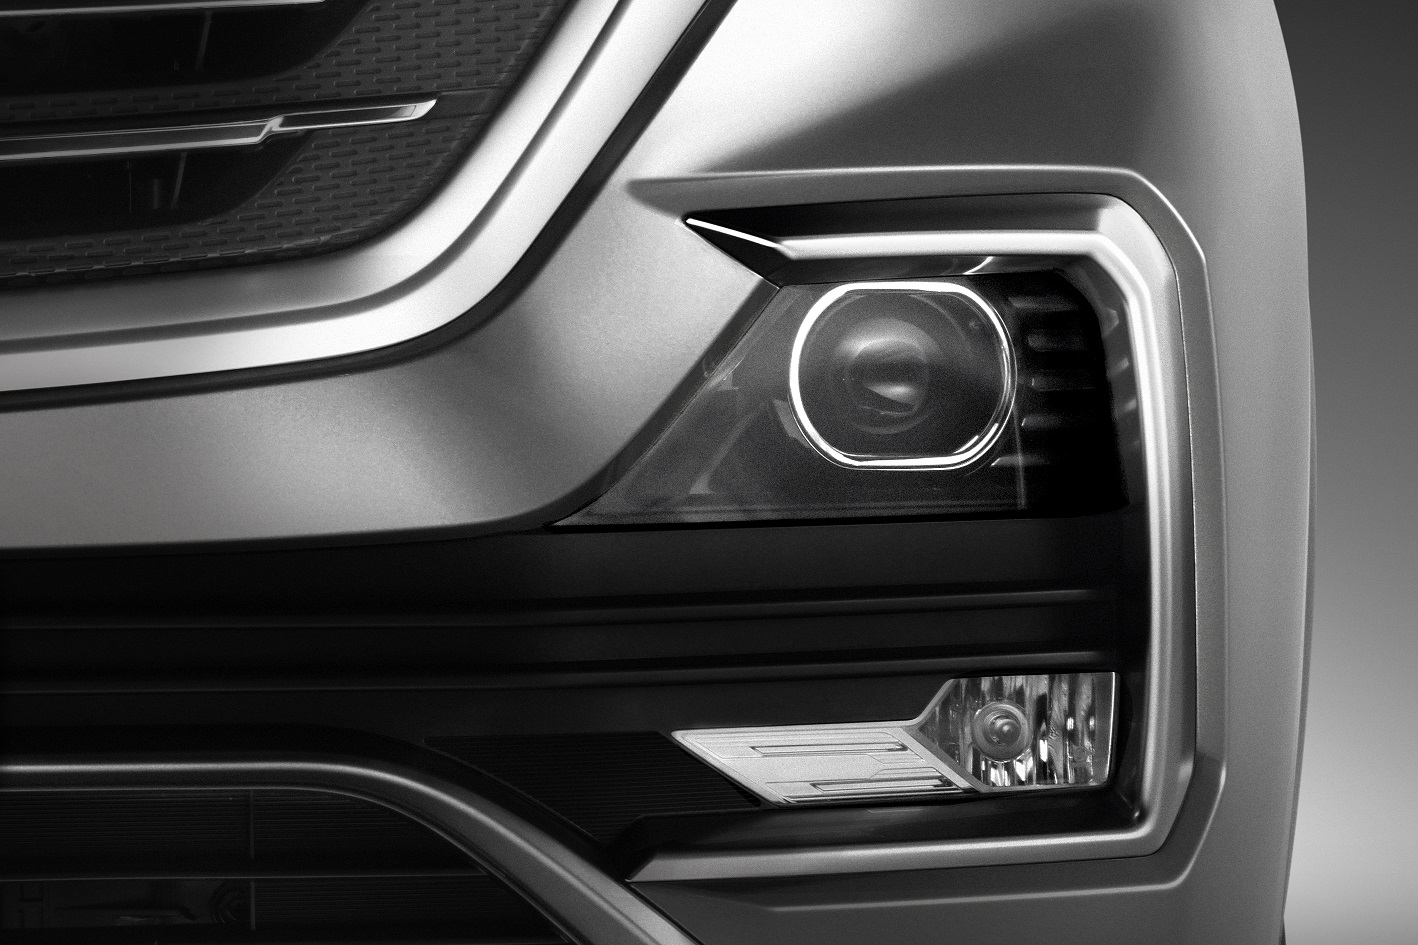 ALL-NEW CHEVROLET CAPTIVA'S DYNAMIC DESIGN INSPIRED BY